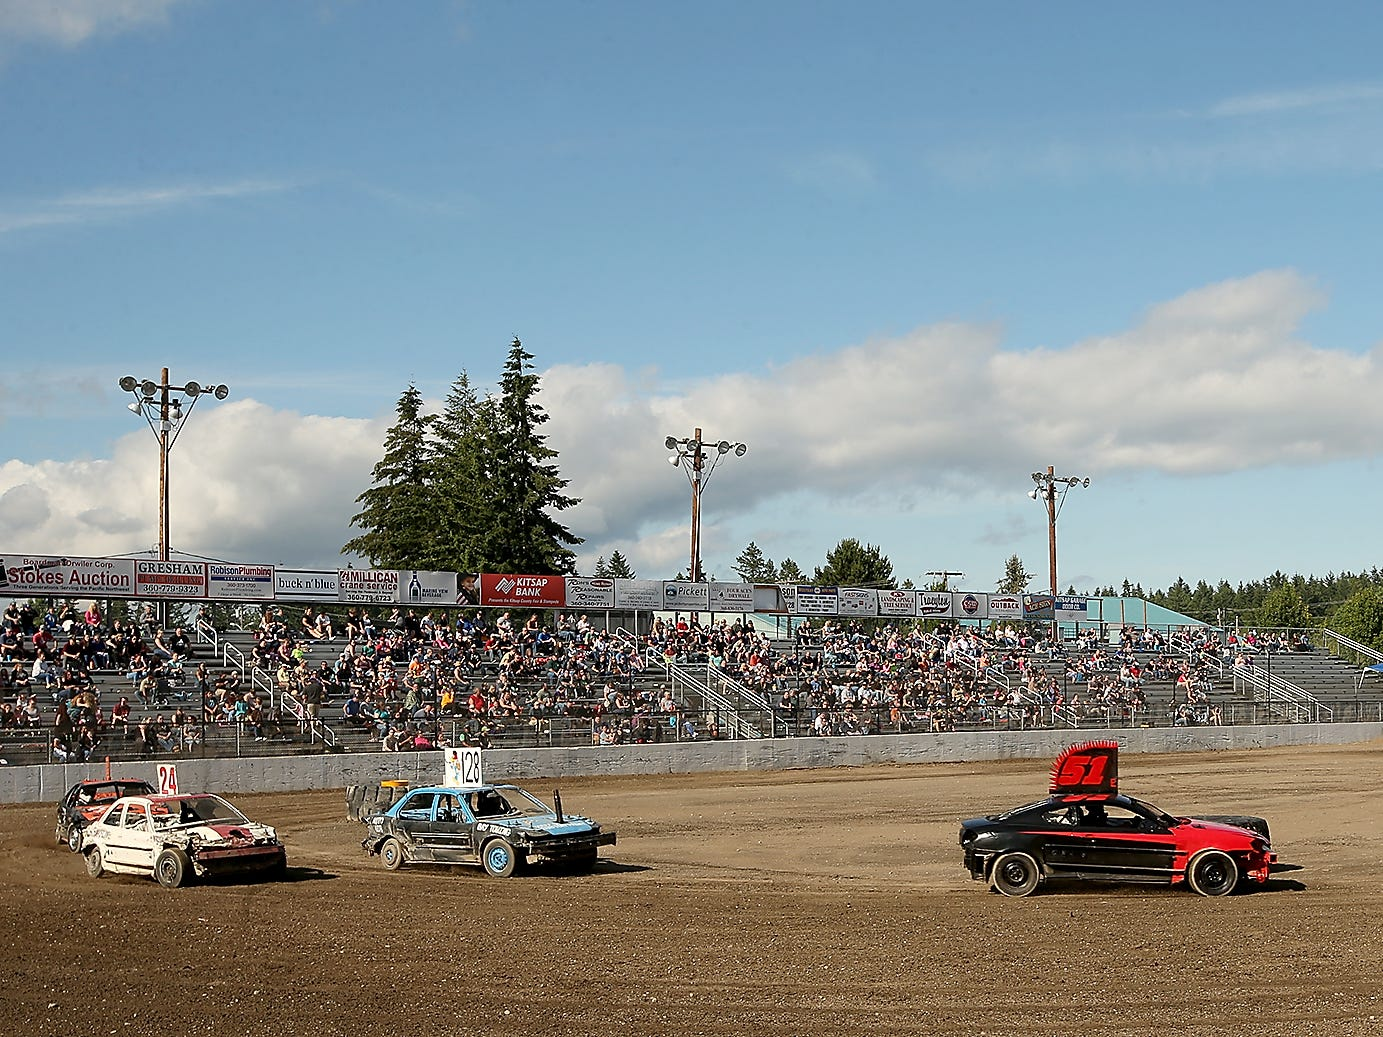 Mini entries speed around the track for the Kitsap Destruction Derby at Thunderbird Stadium on Saturday, June 23, 2018.